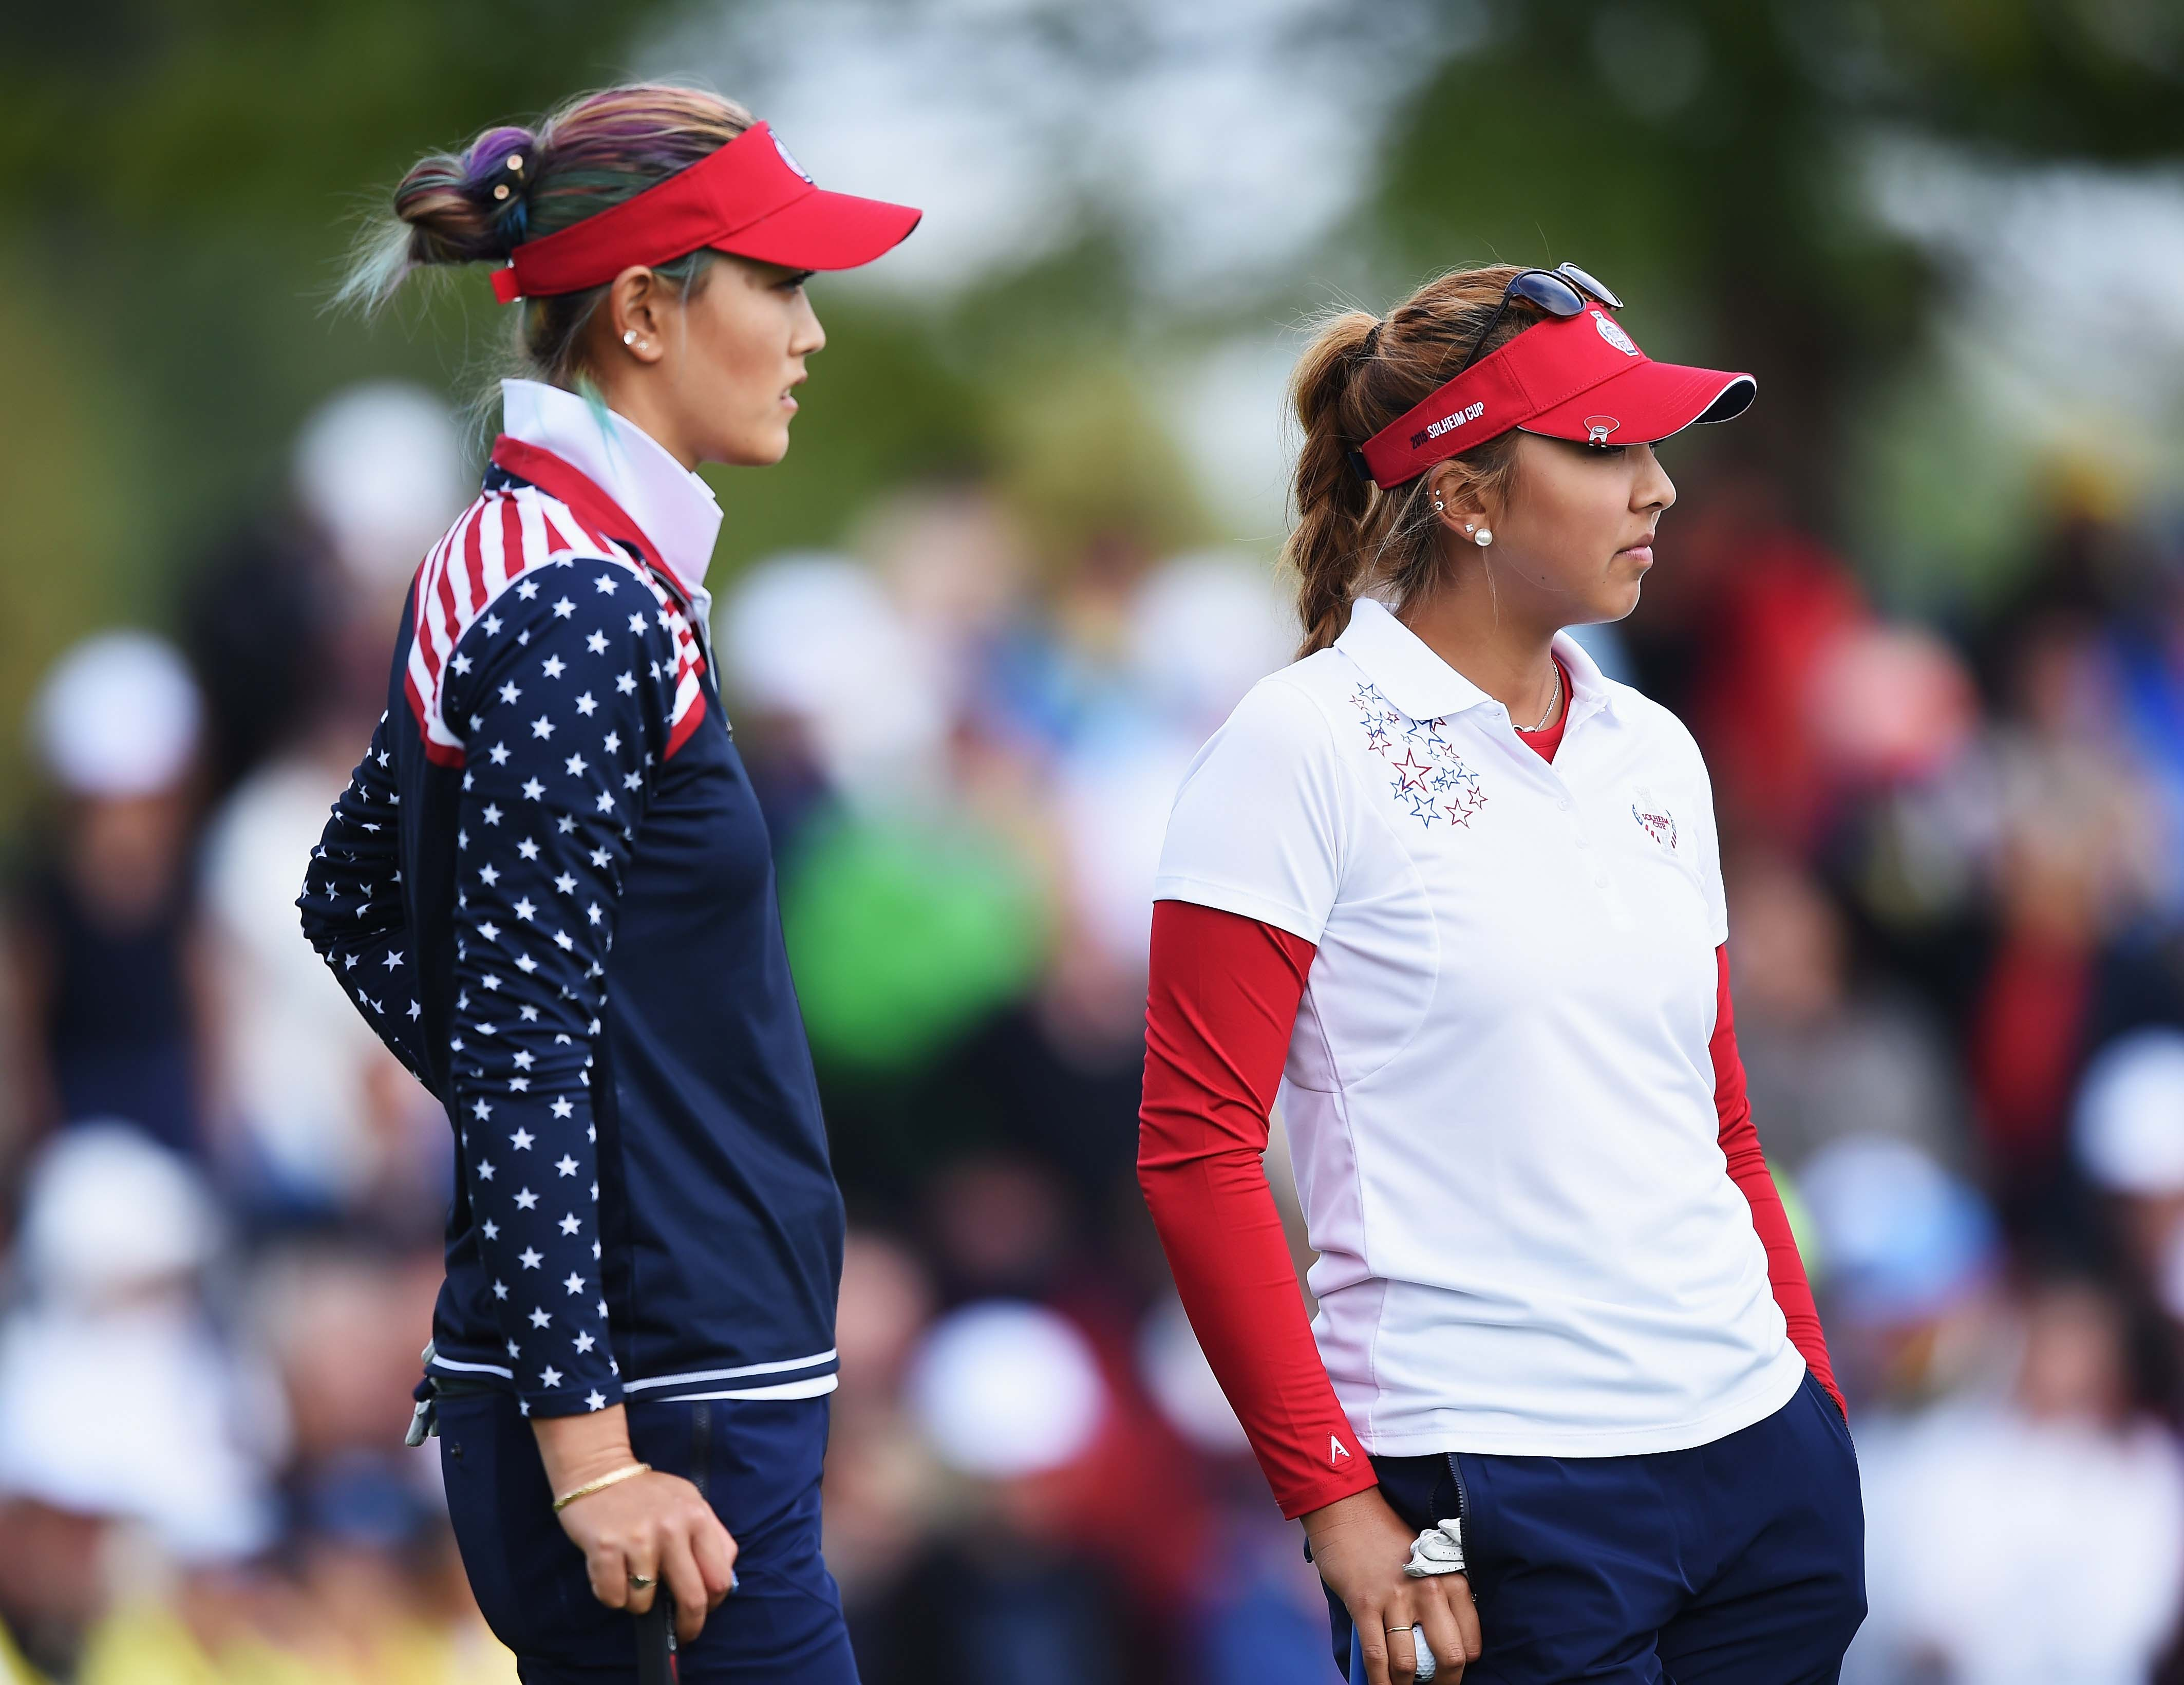 Michelle Wie and Alison Lee